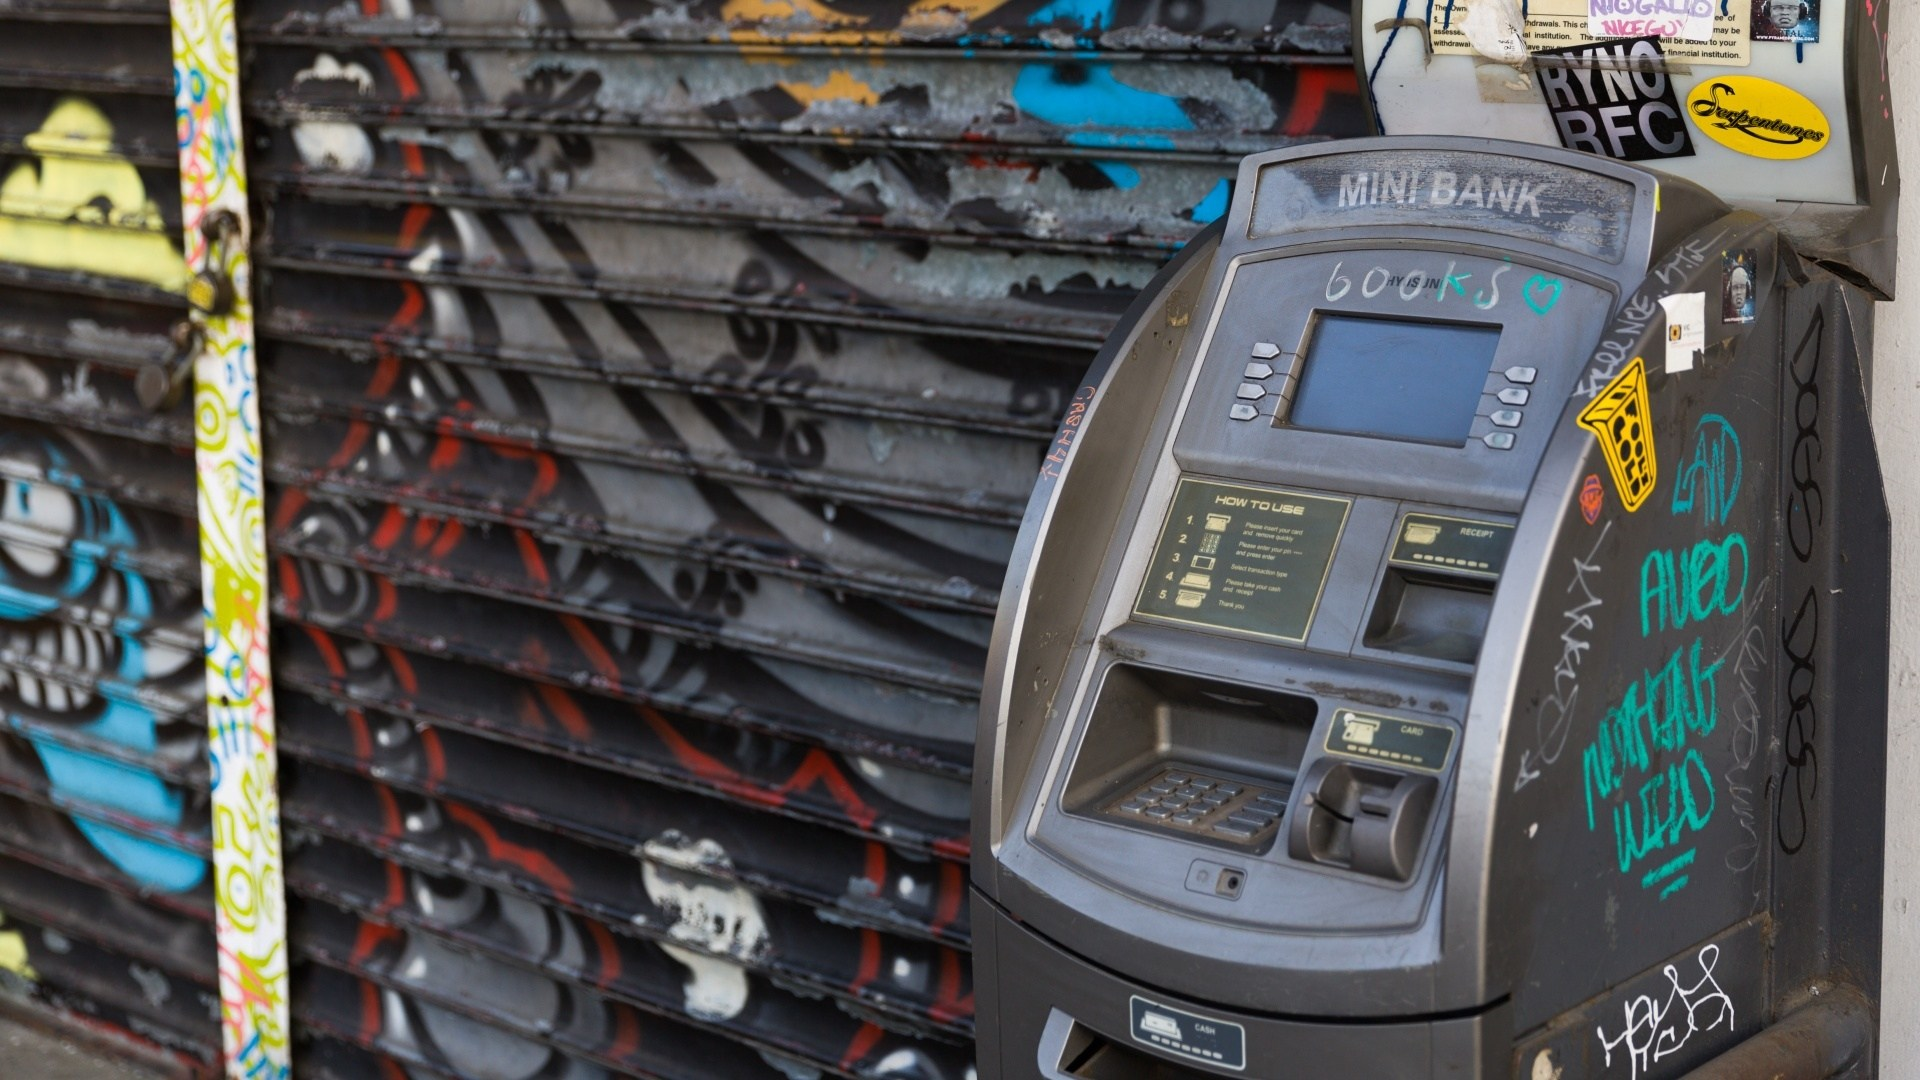 shady atms while traveling safety tips